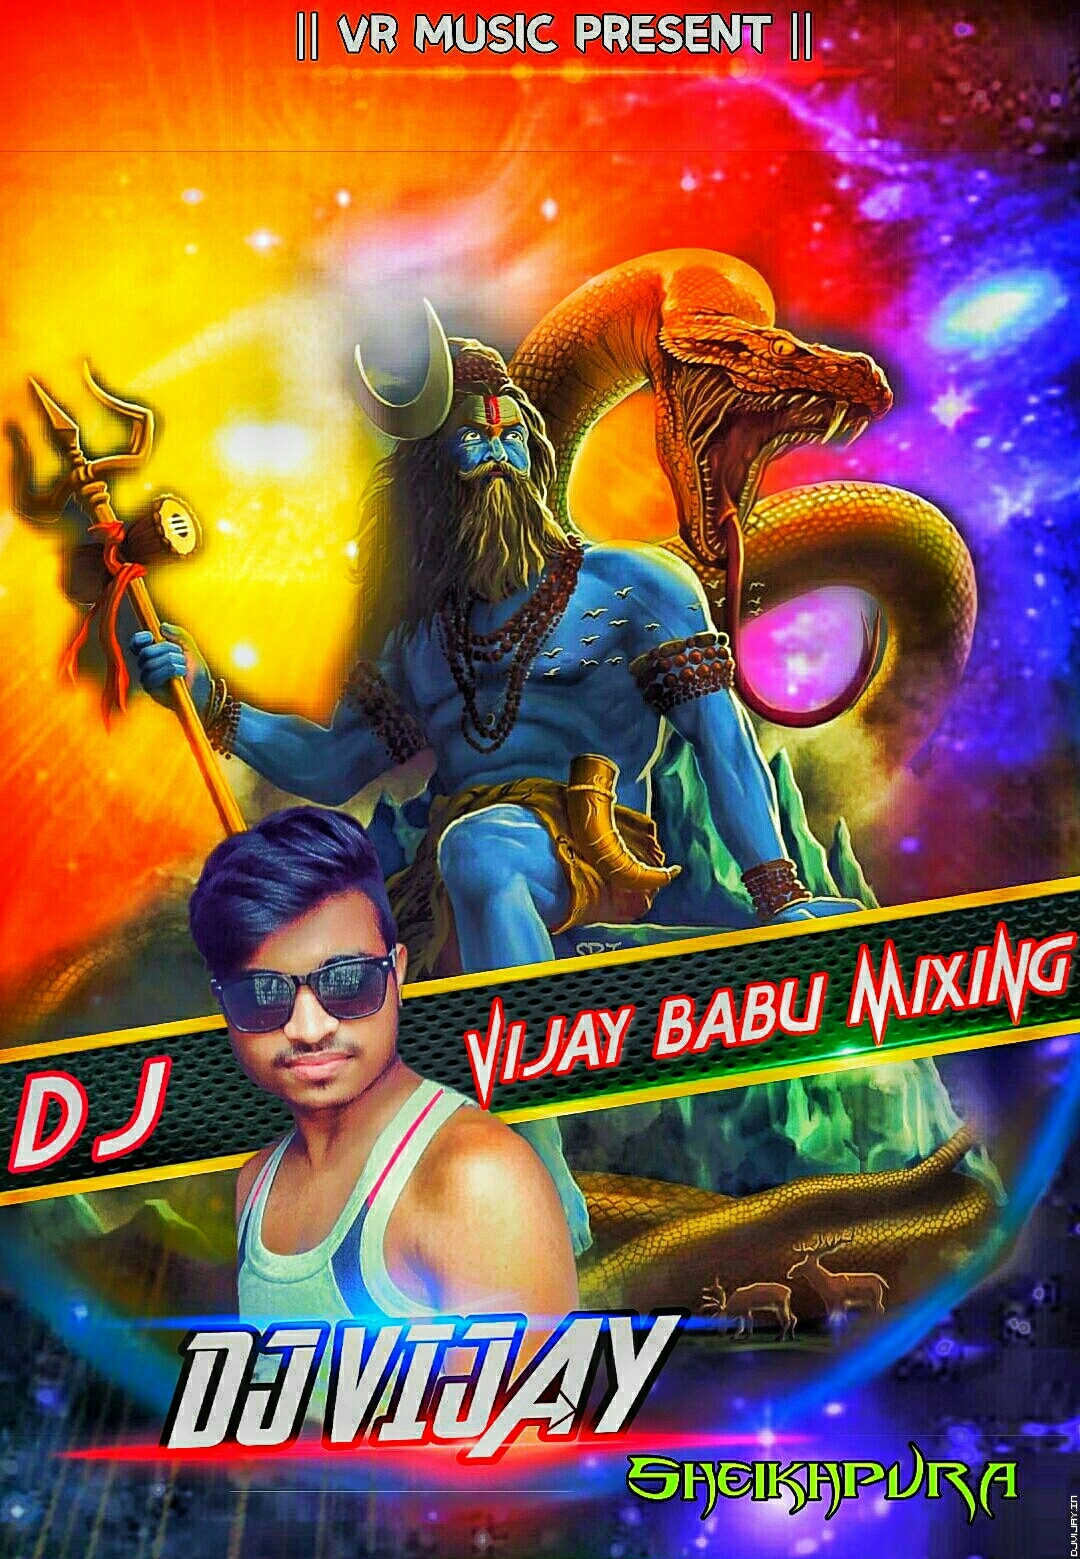 Bhangiya Pise Ke Machine Bol Bum Dj Song 2019 Dj Vijay.mp3